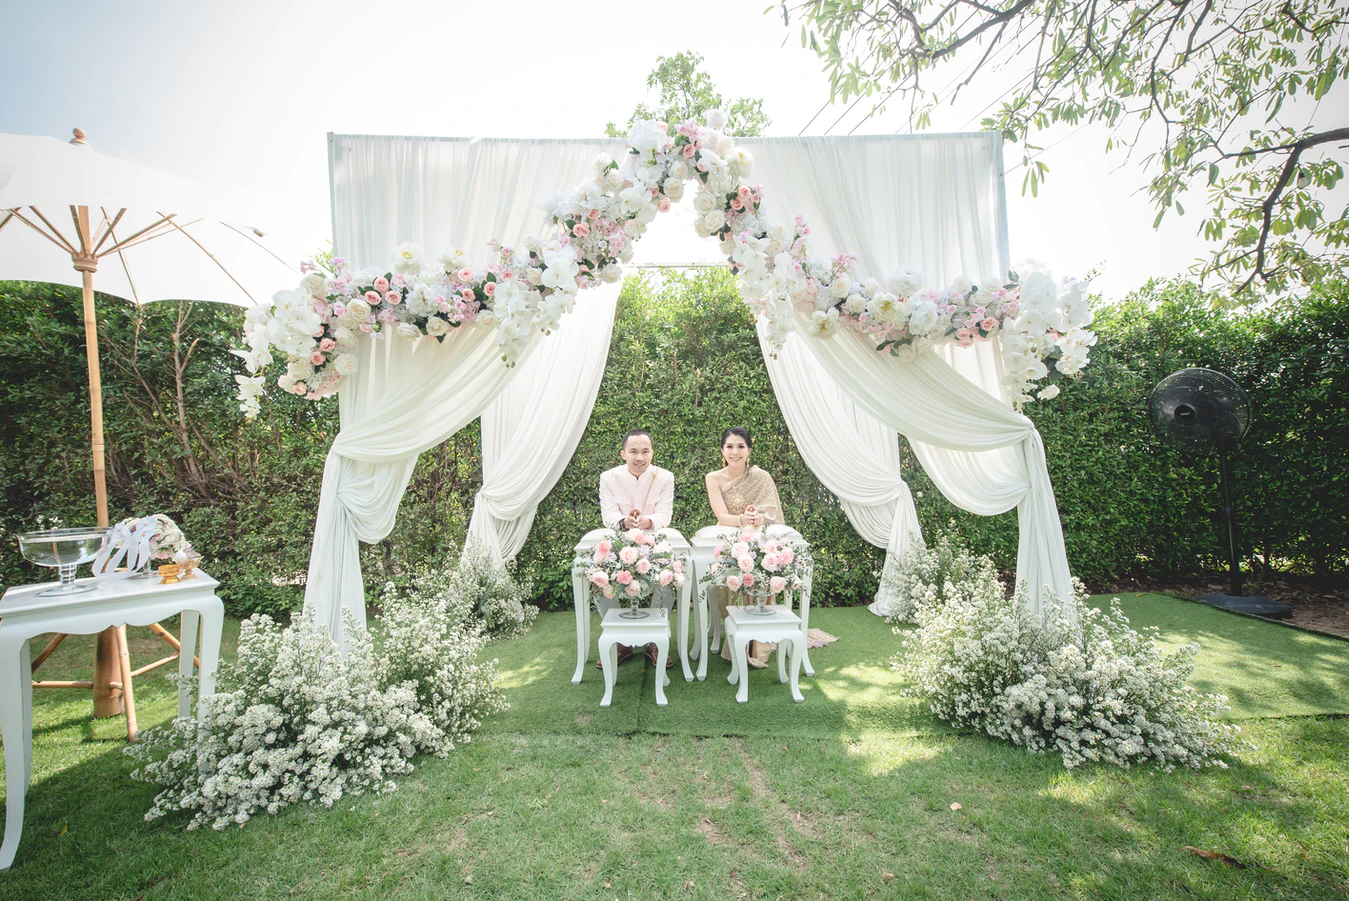 How to plan a comfortable wedding for everyone